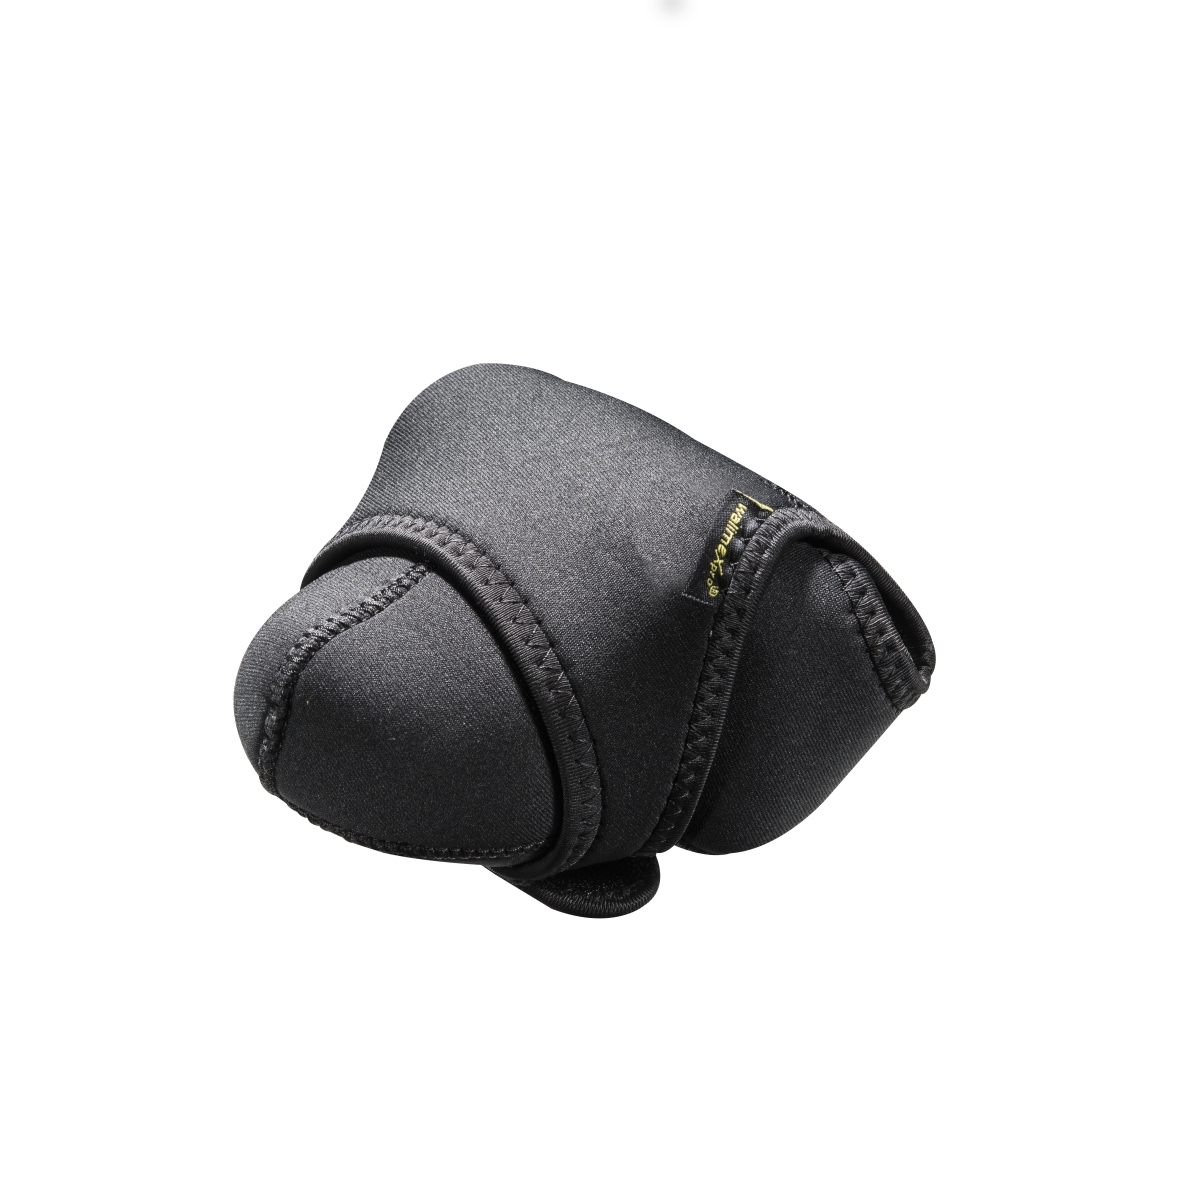 Walimex pro Neoprene Camera Protection Cover S